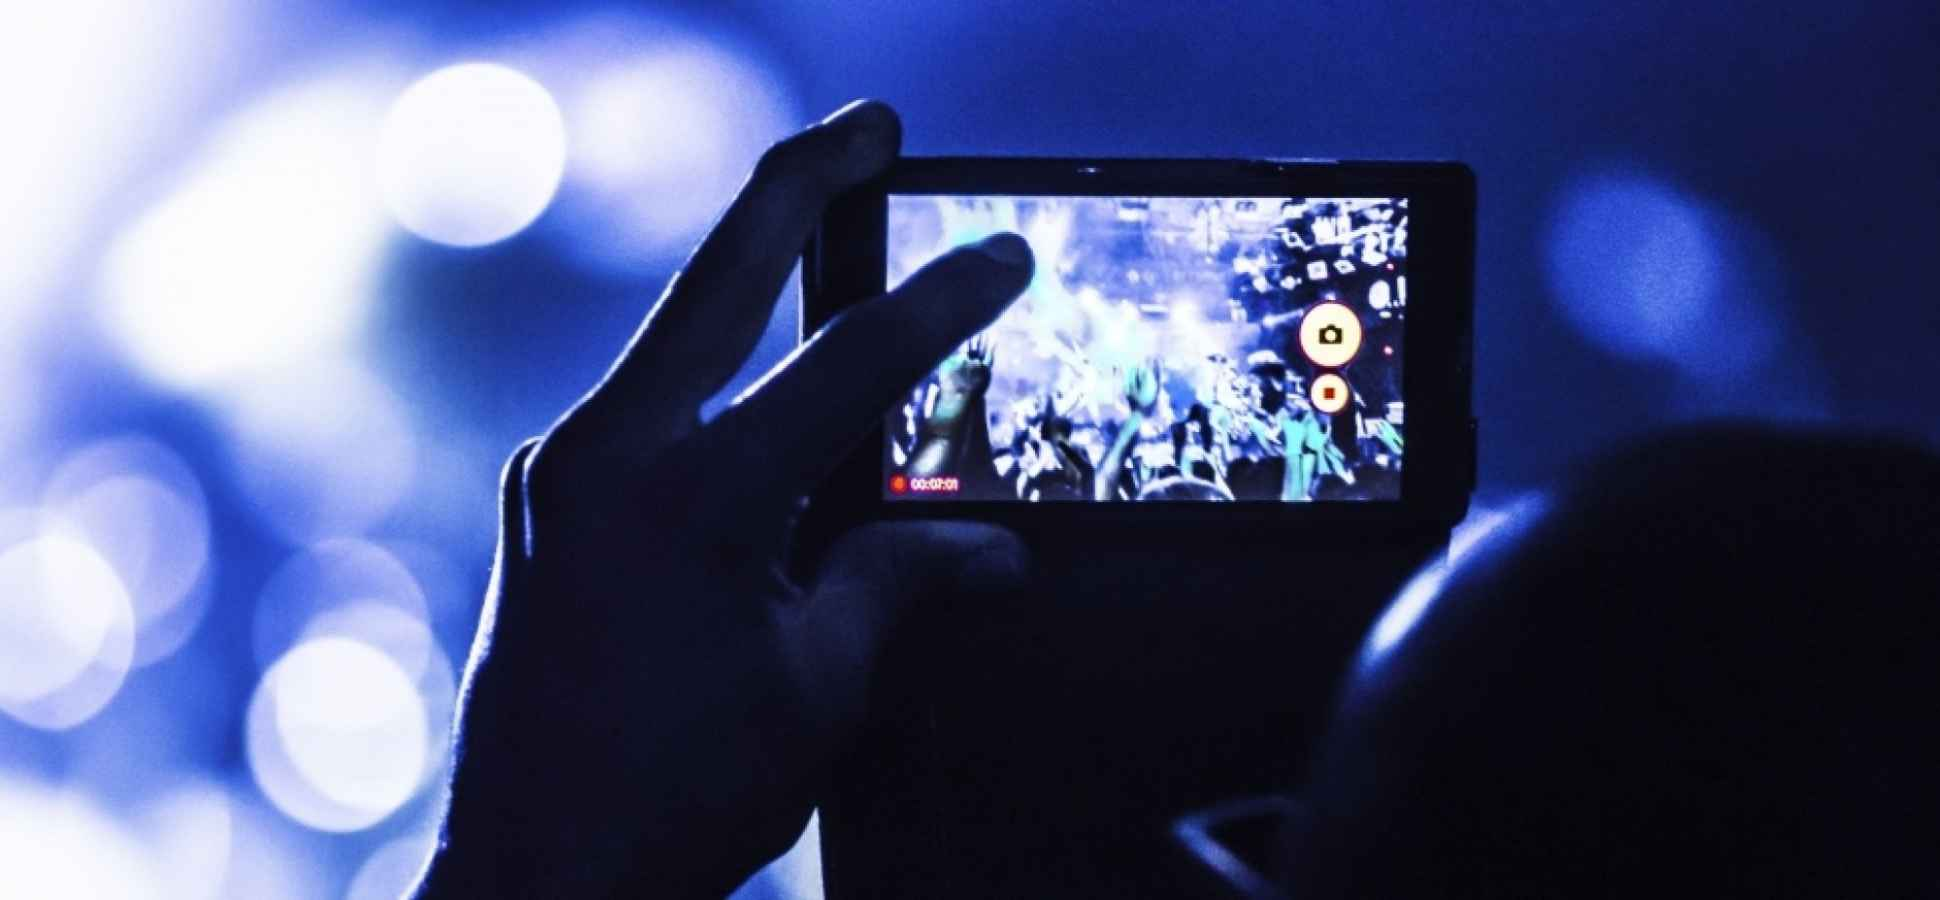 Facebook Mentions Goes Live: The Next Step in the Livestream Revolution